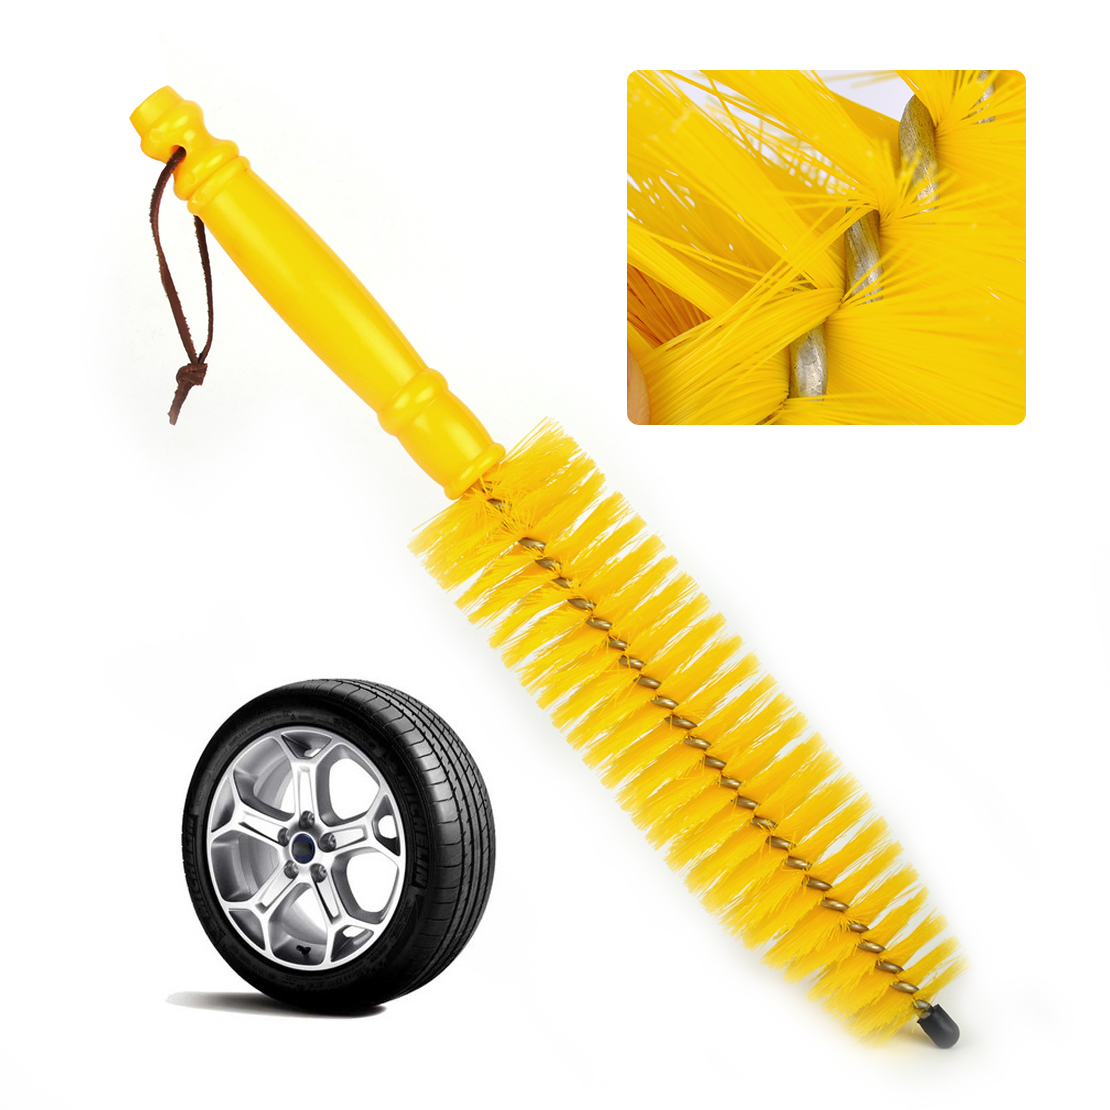 CITALL Car Auto Vehicle Motorcycle Wheel Tyre Tire Rim Hub Long Brush Scrub Cleaner Wash Cleaning Tool Yellow